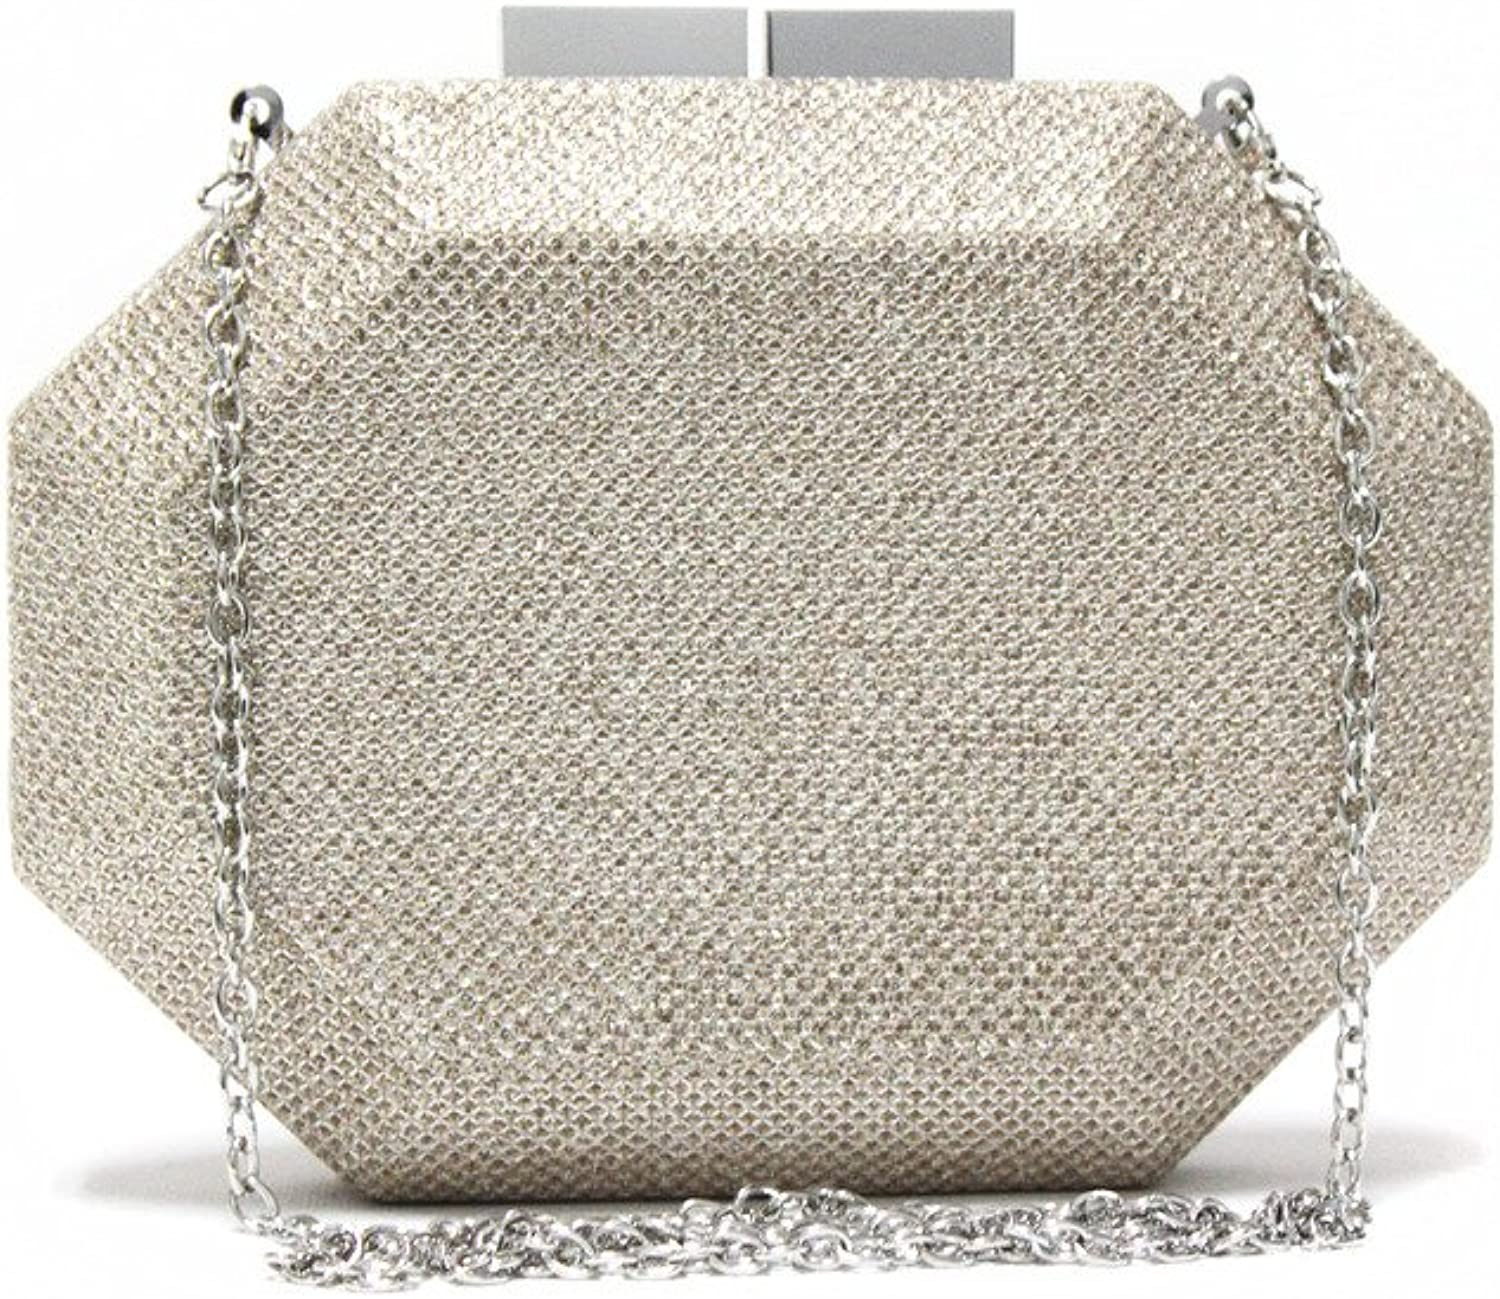 Emma Cate Young Girls Fashion Luxury Sparkle Bling Bling Party Evening Clutch Bag